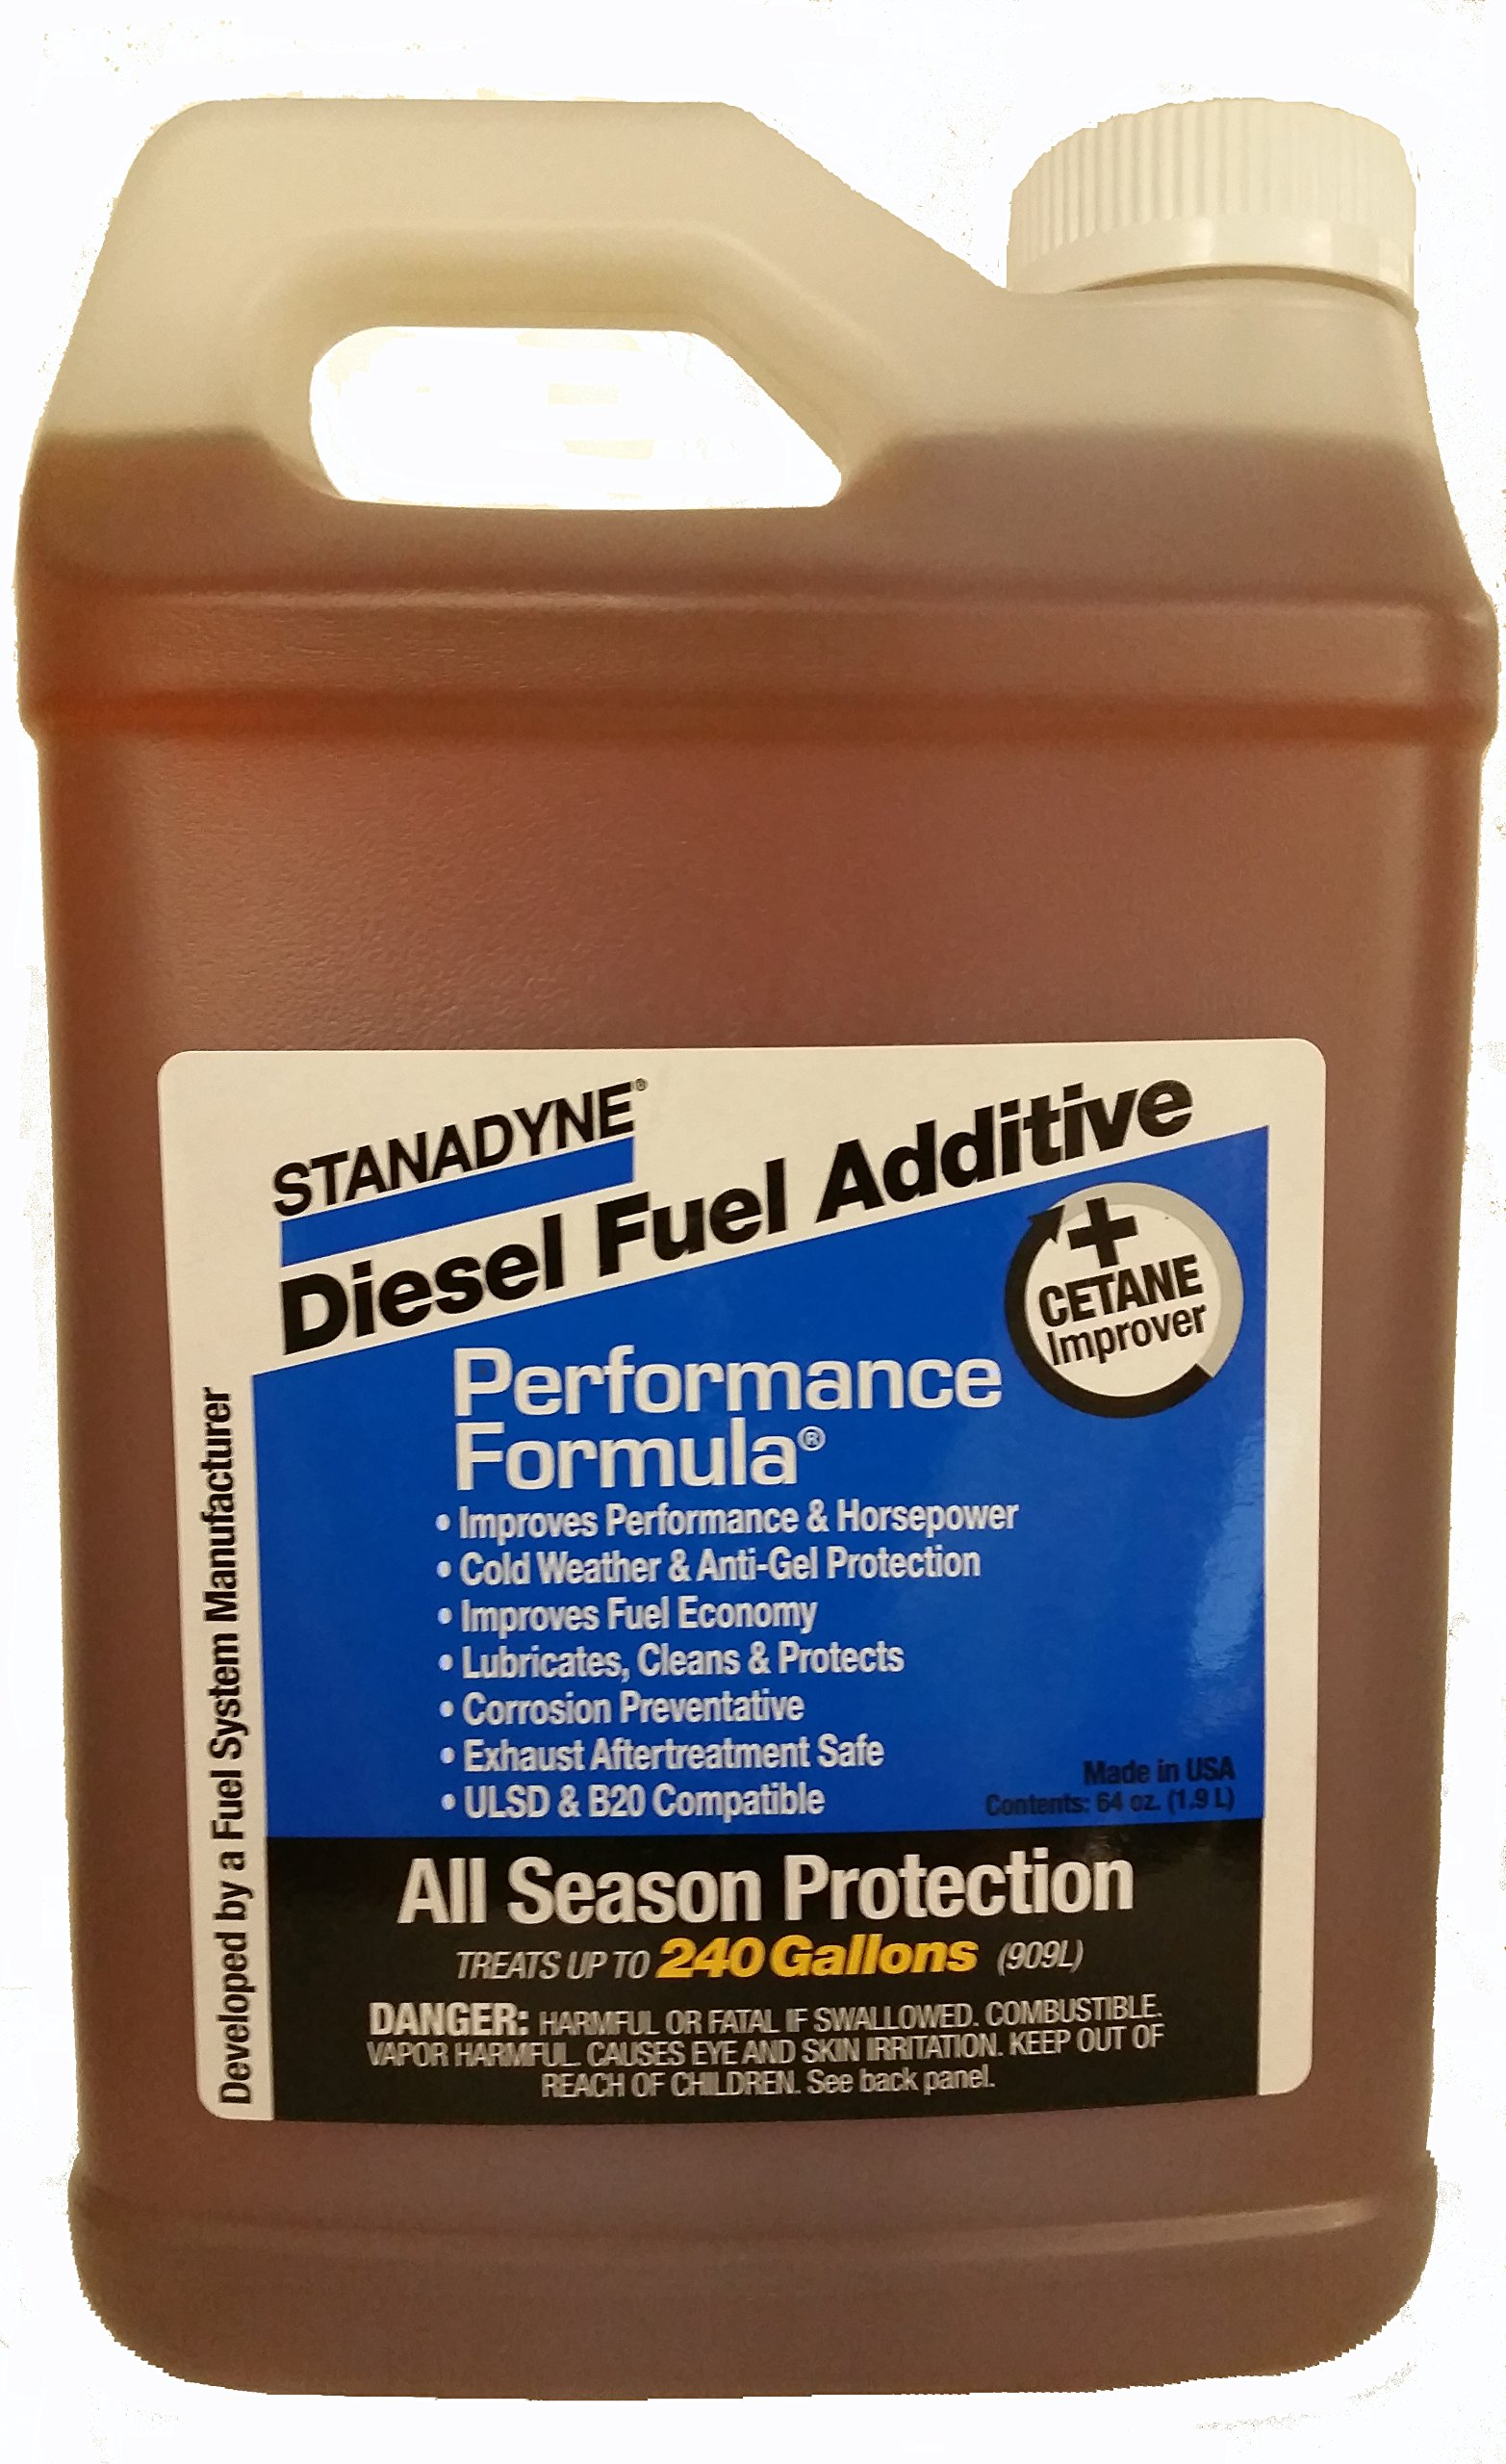 Stanadyne Performance Formula Diesel Fuel Additive - 64 ounce, Case of 6 Jugs by Stanadyne